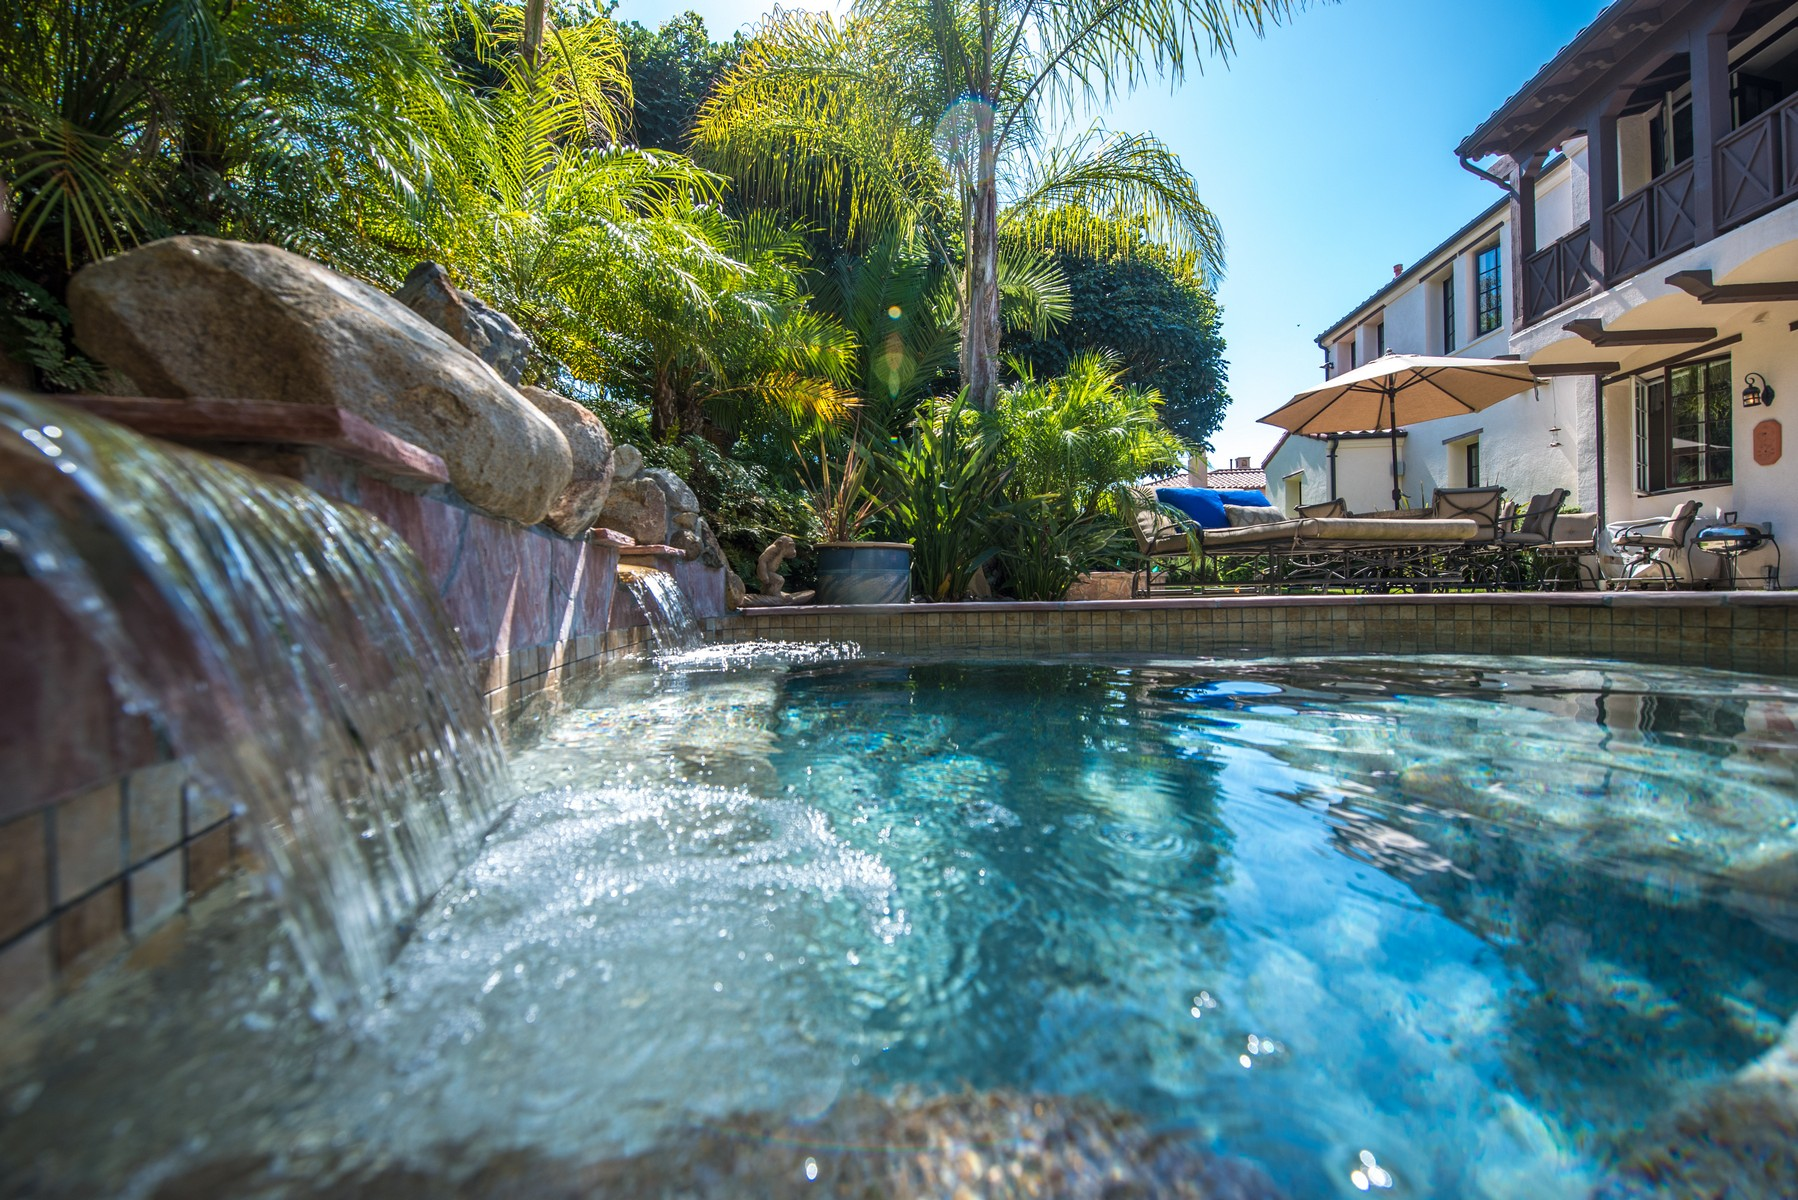 Single Family Home for Sale at 8290 Top O The Morning San Diego, California, 92037 United States